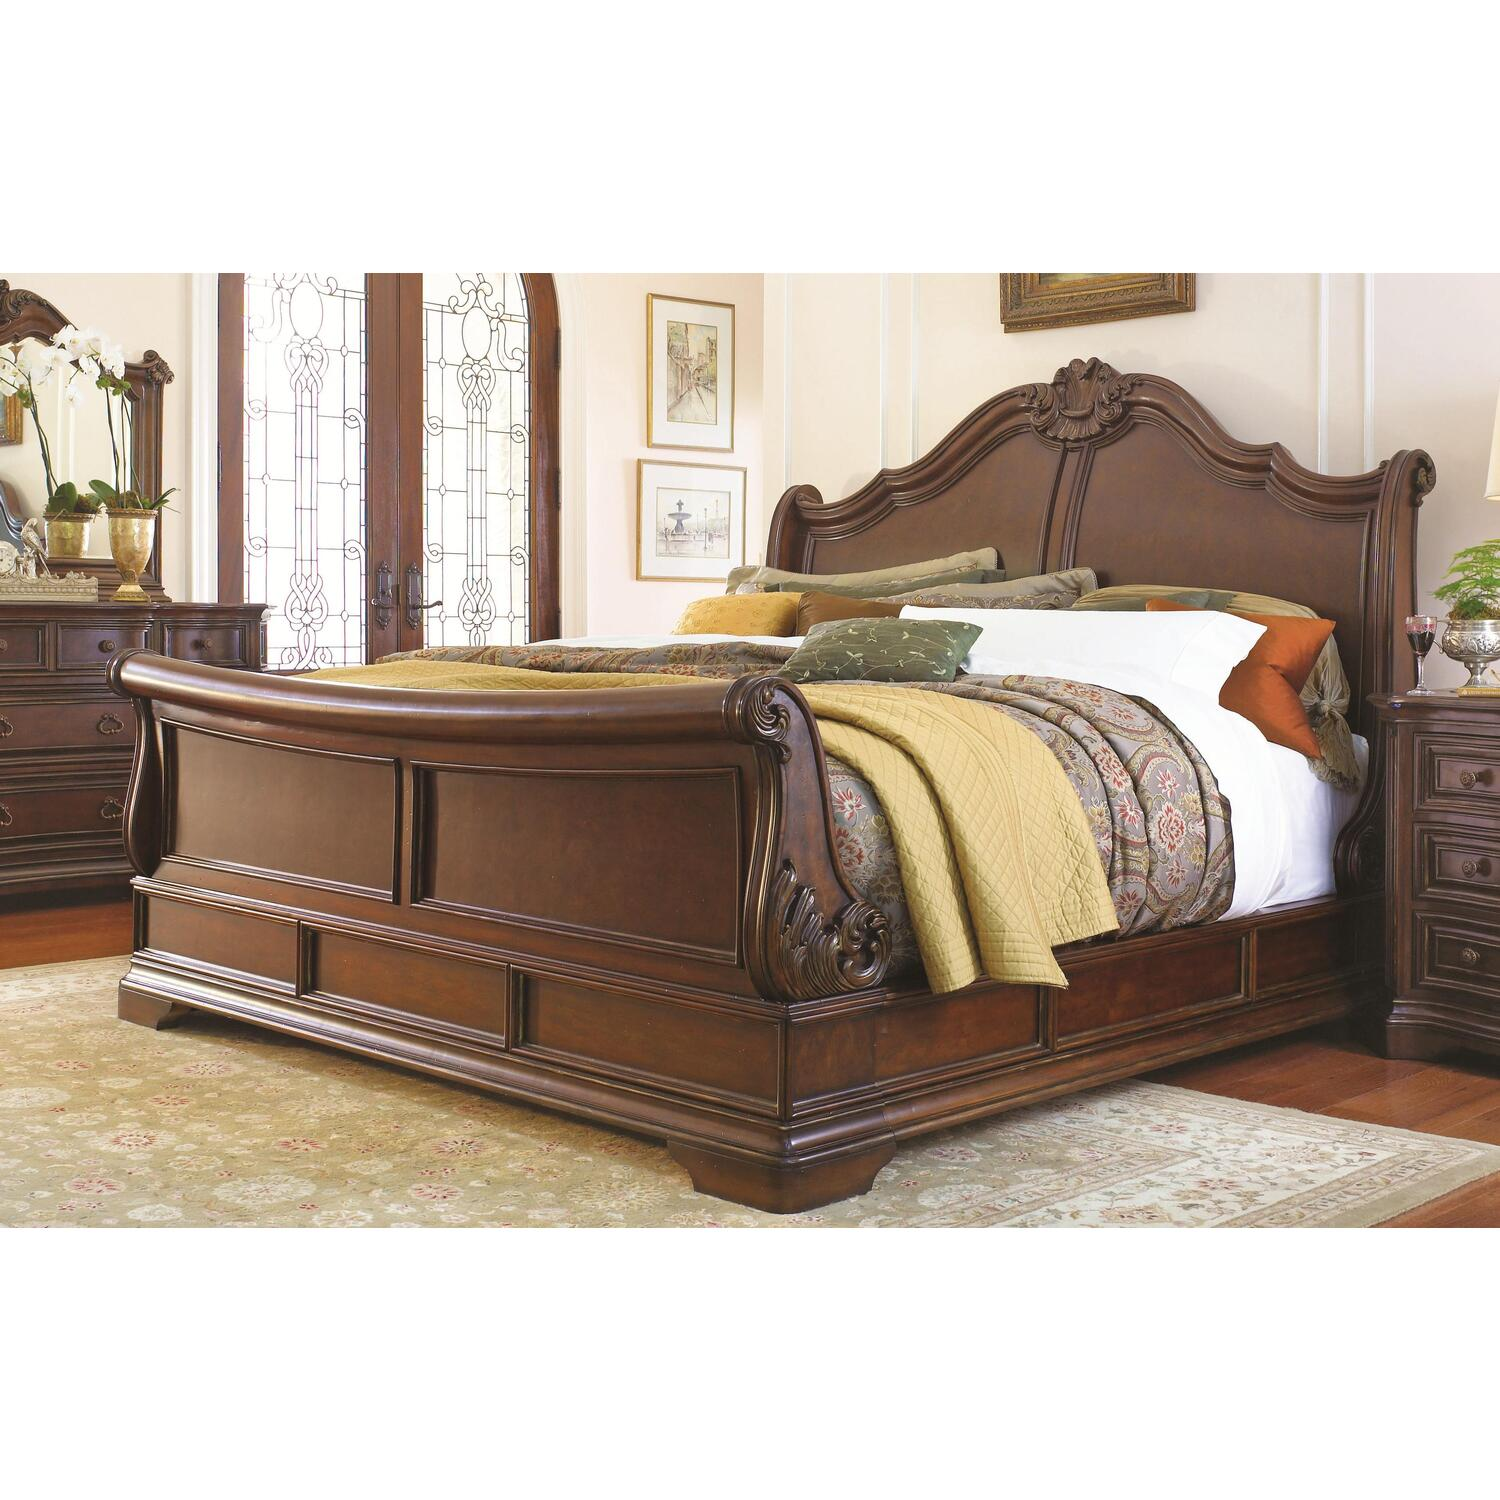 Universal Furniture Casa Verona California King Sleigh Bed By Oj Commerce 50977ck 2